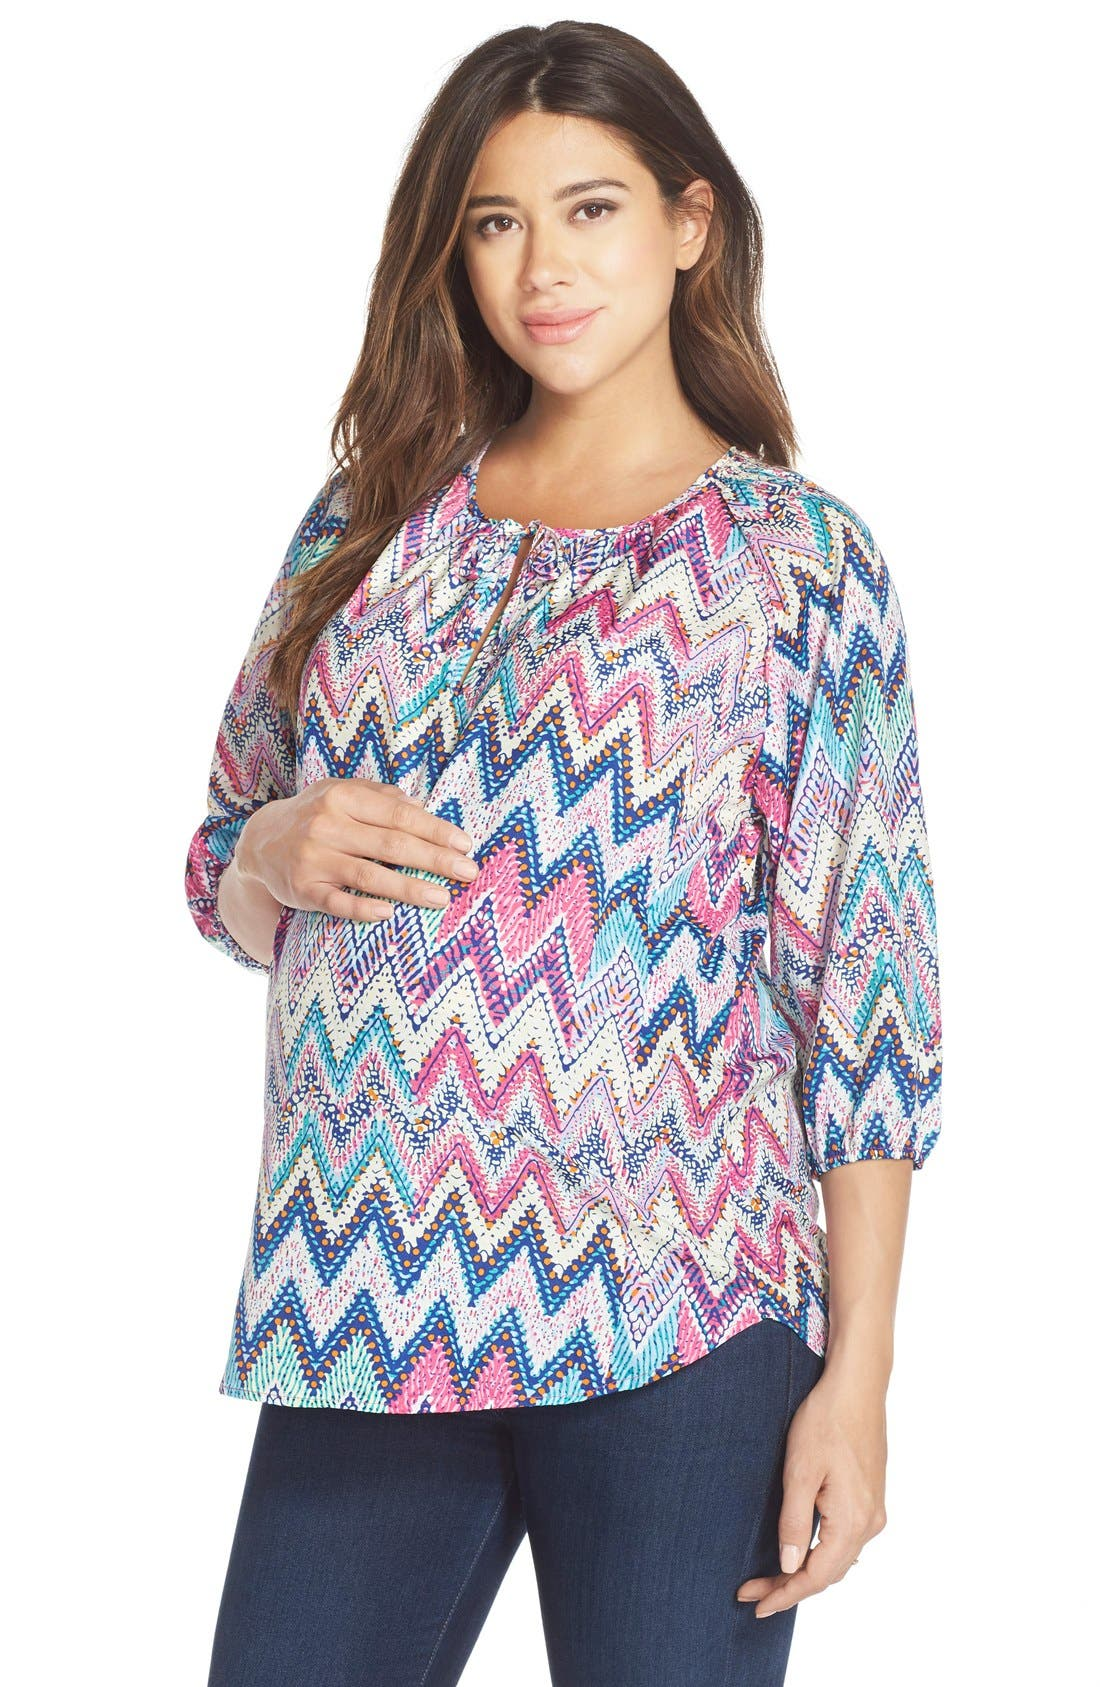 LOYAL HANA 'Megan' Maternity/Nursing Top